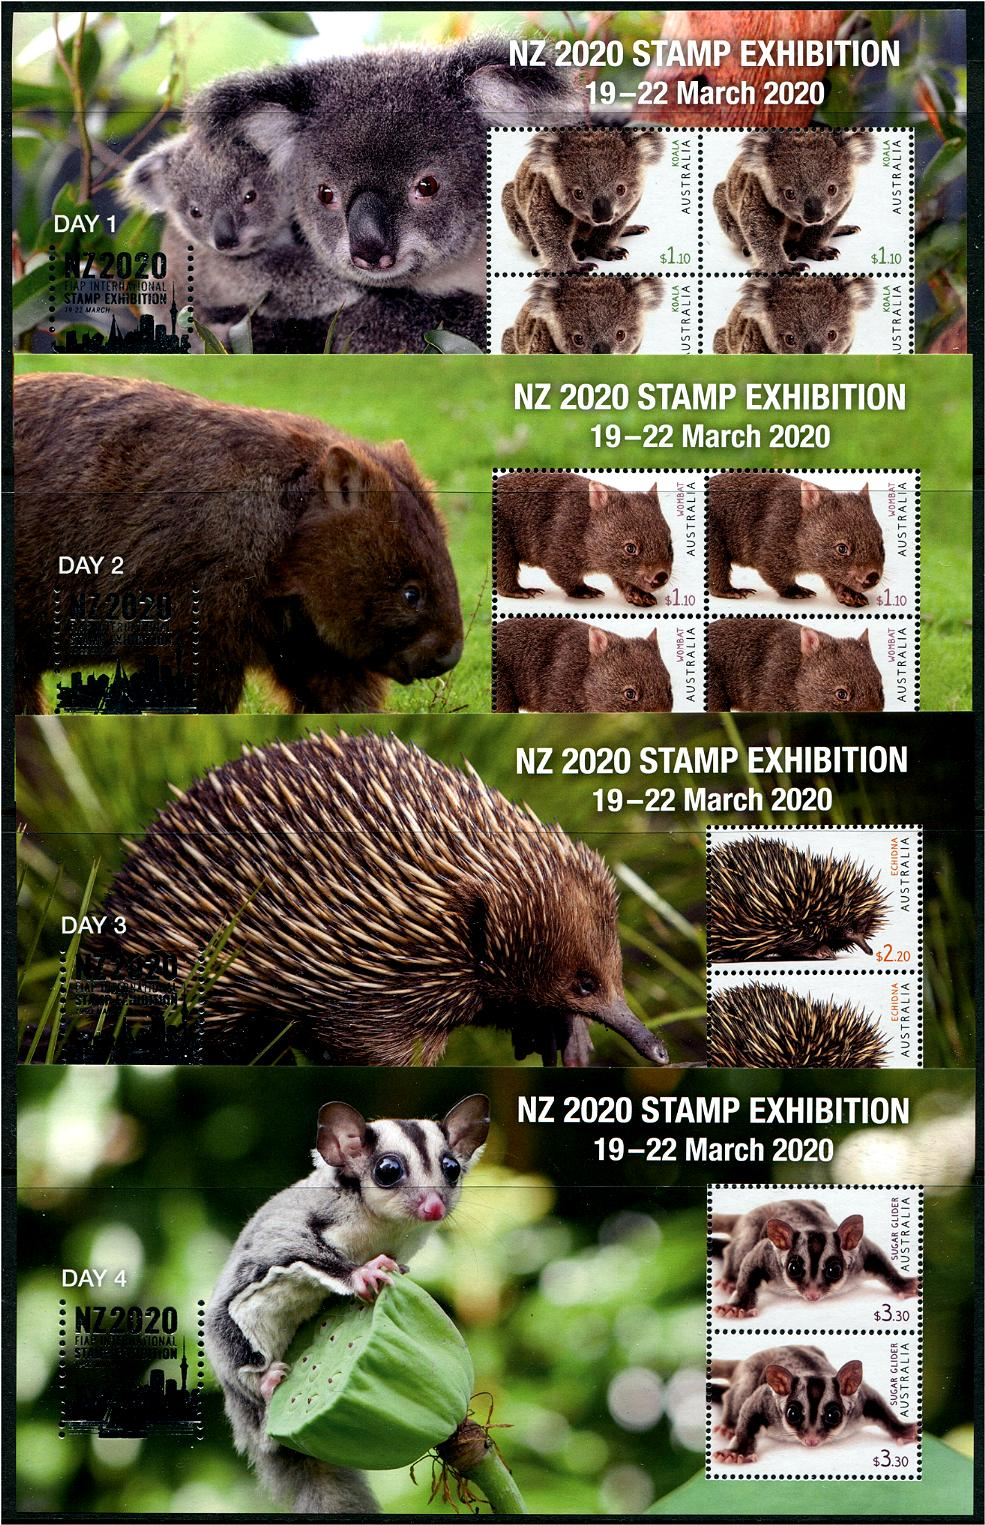 AUSTRALIA - New Zealand 2020 Exhibition Set of 4 Souvenir Sheets Day 1-Day 4 with Silver Foil (Koala, Wombat, Etc.) (1)